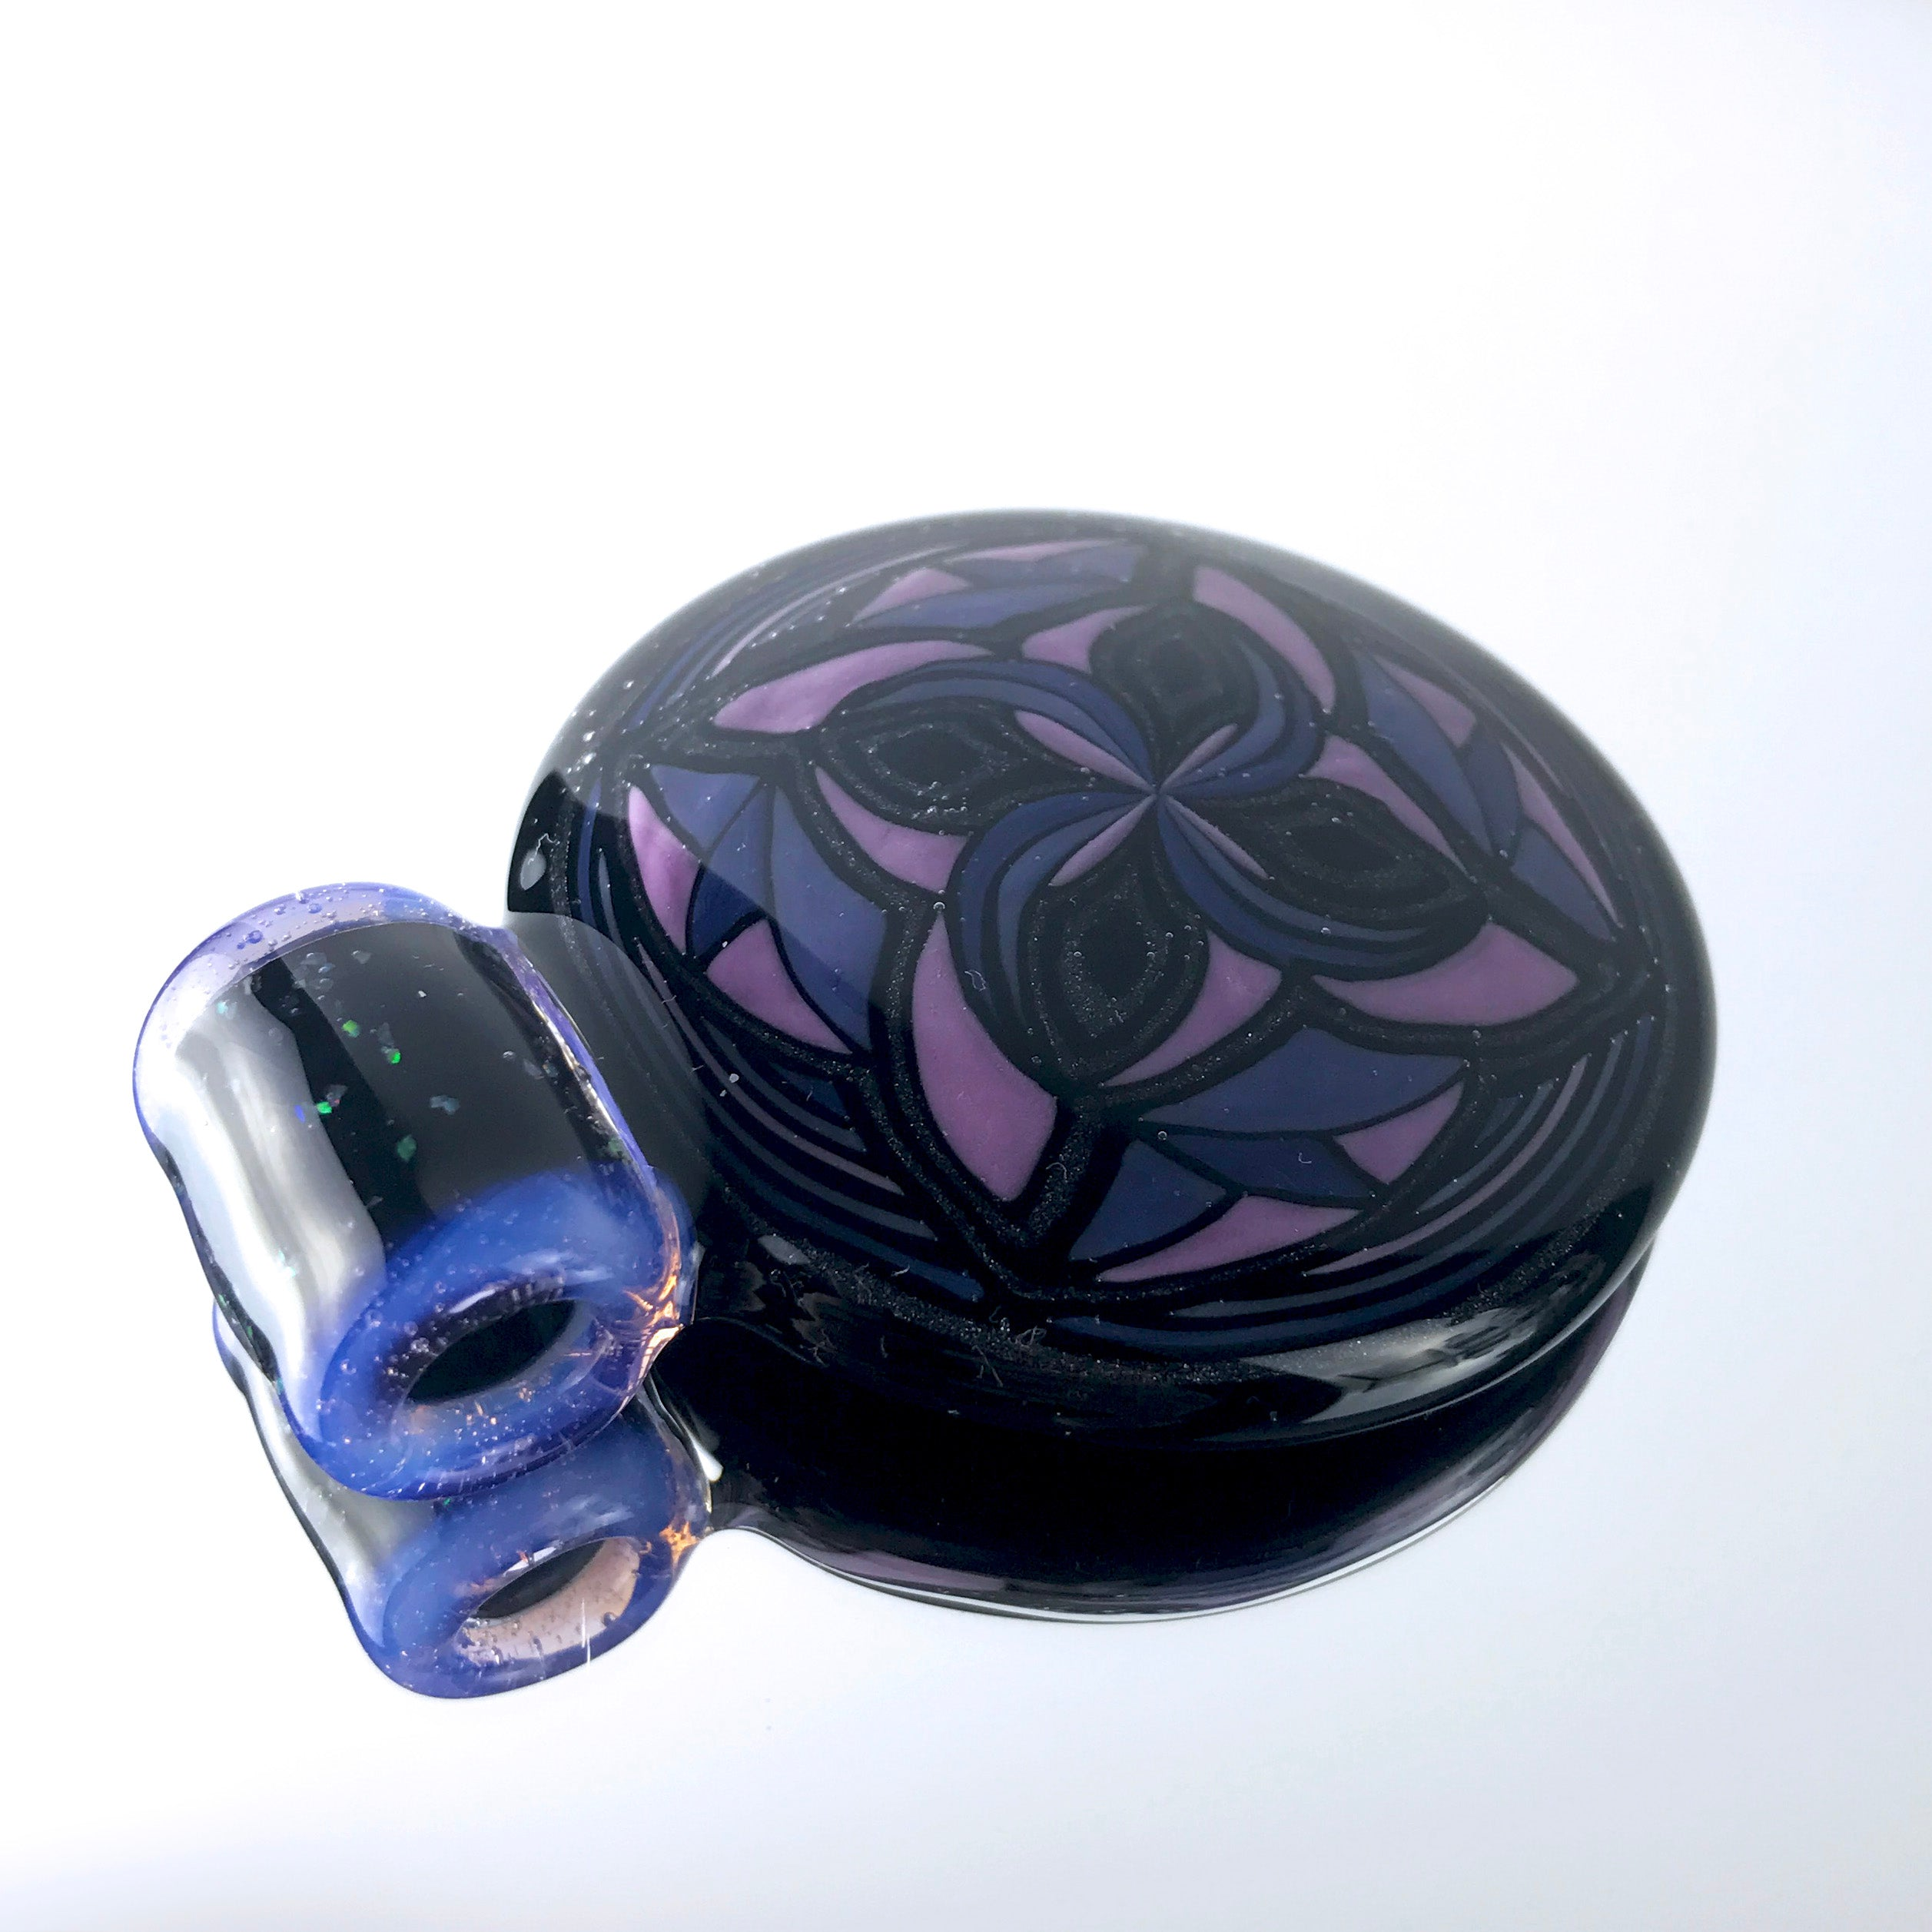 d704a5db6fb9 DEW (Doug Williams) - Fillacello pendant - Timeless Glass Gallery